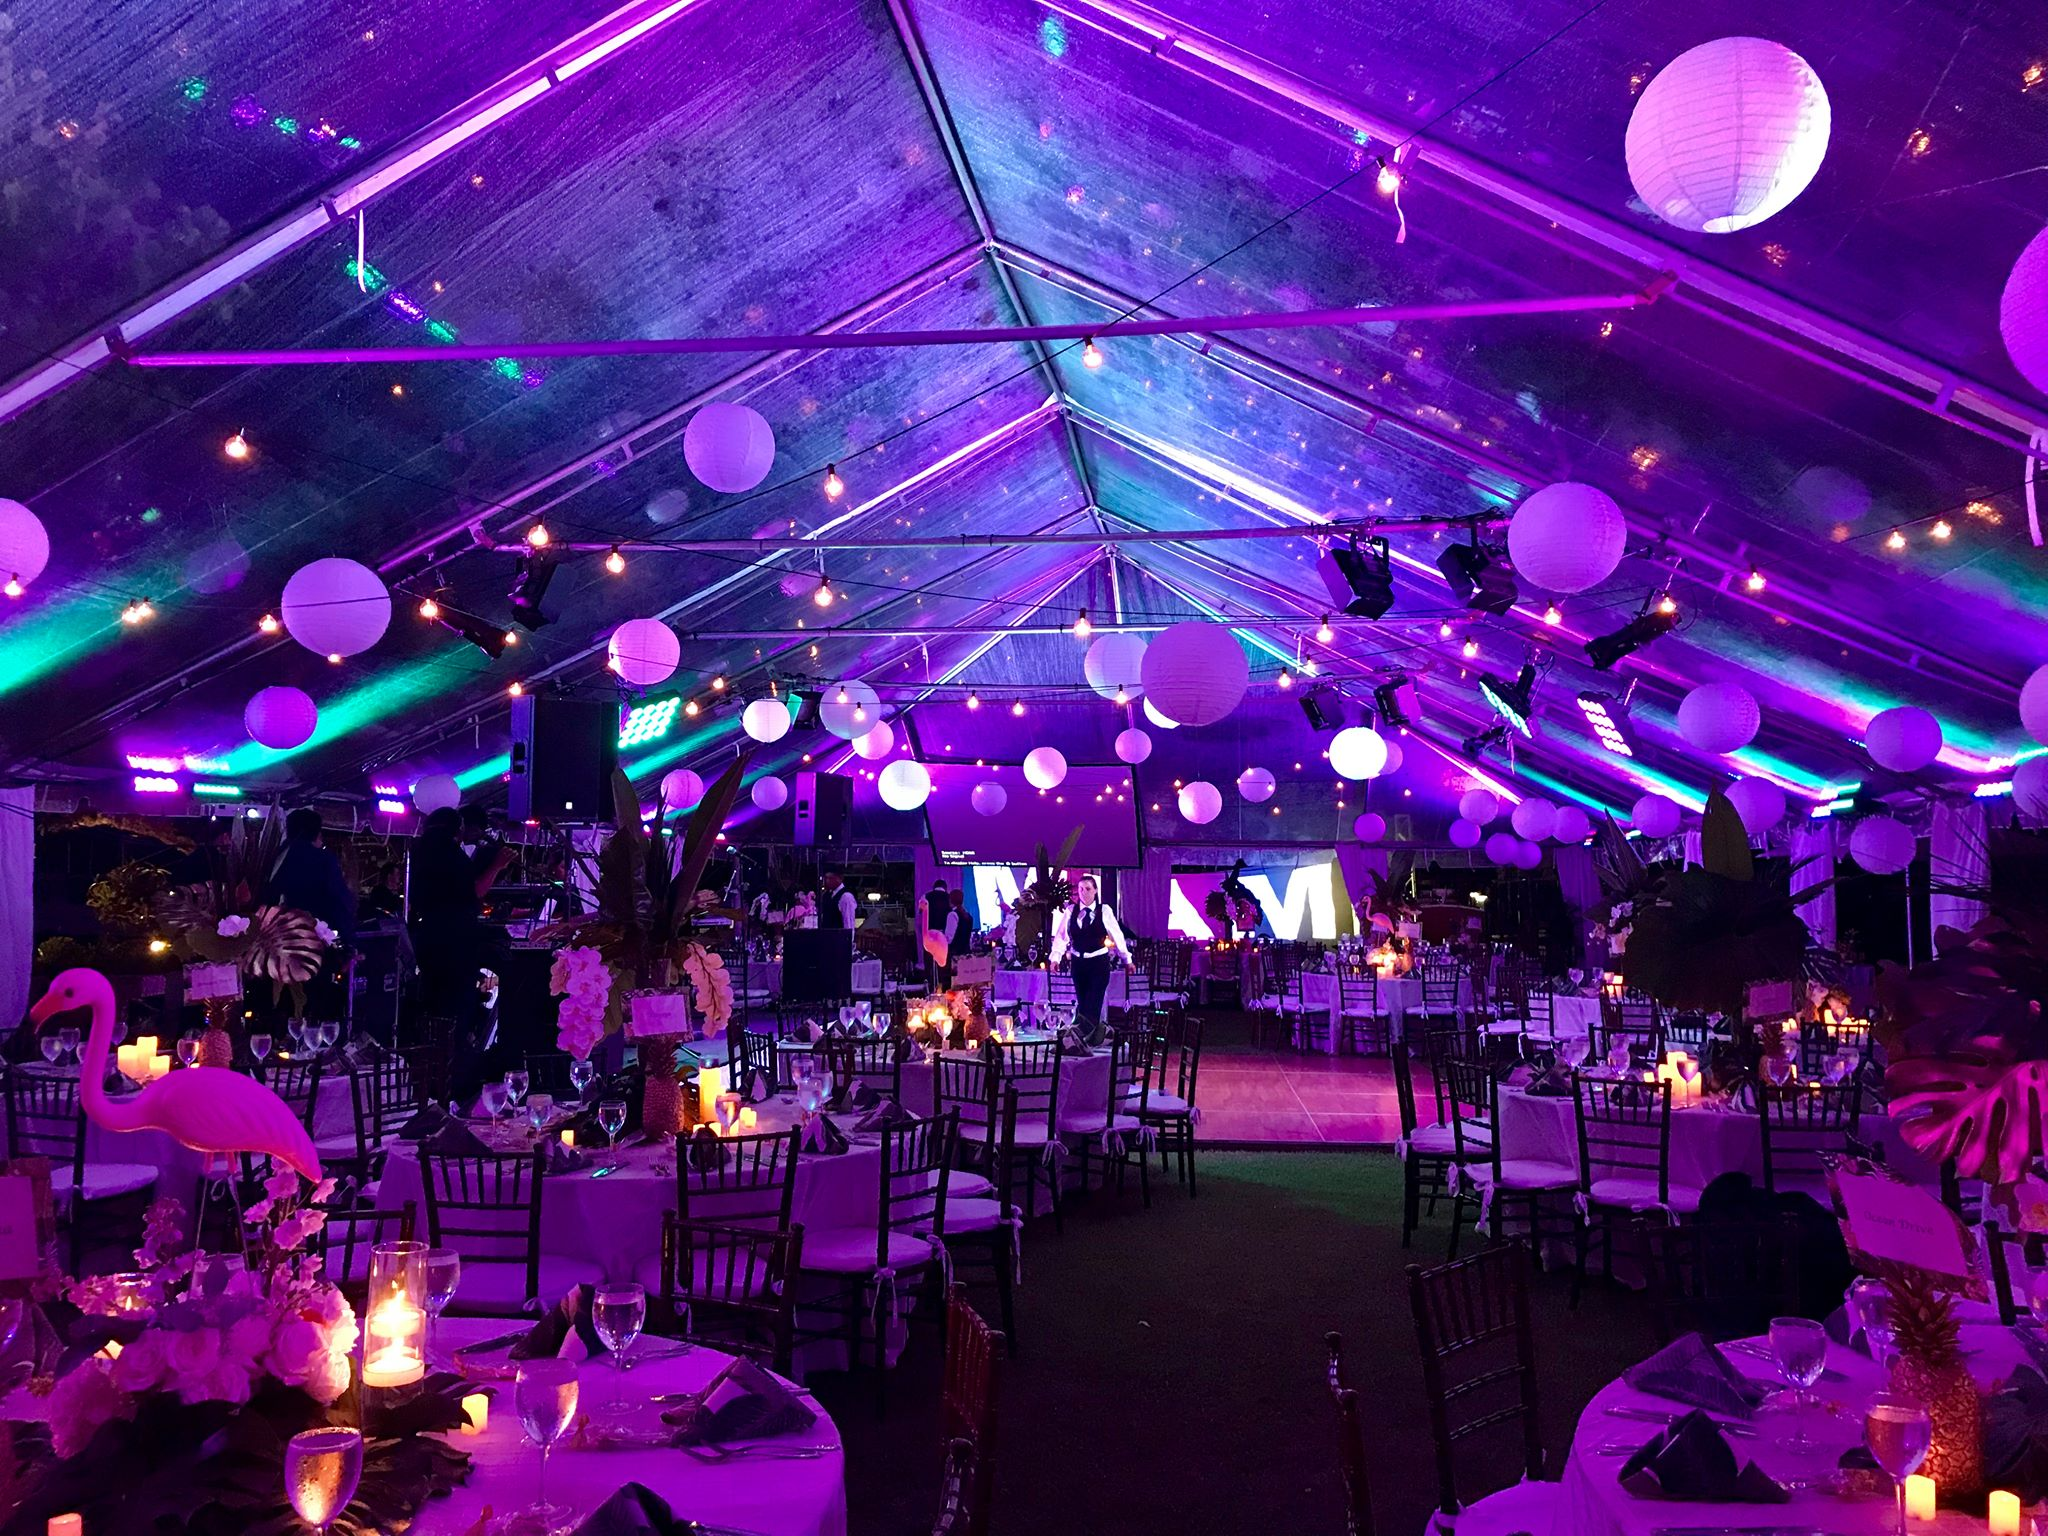 Lighting, tented affair, annual Beaux Arts Miami Costume Ball, Biscayne Bay Yacht Club, Miami, FL